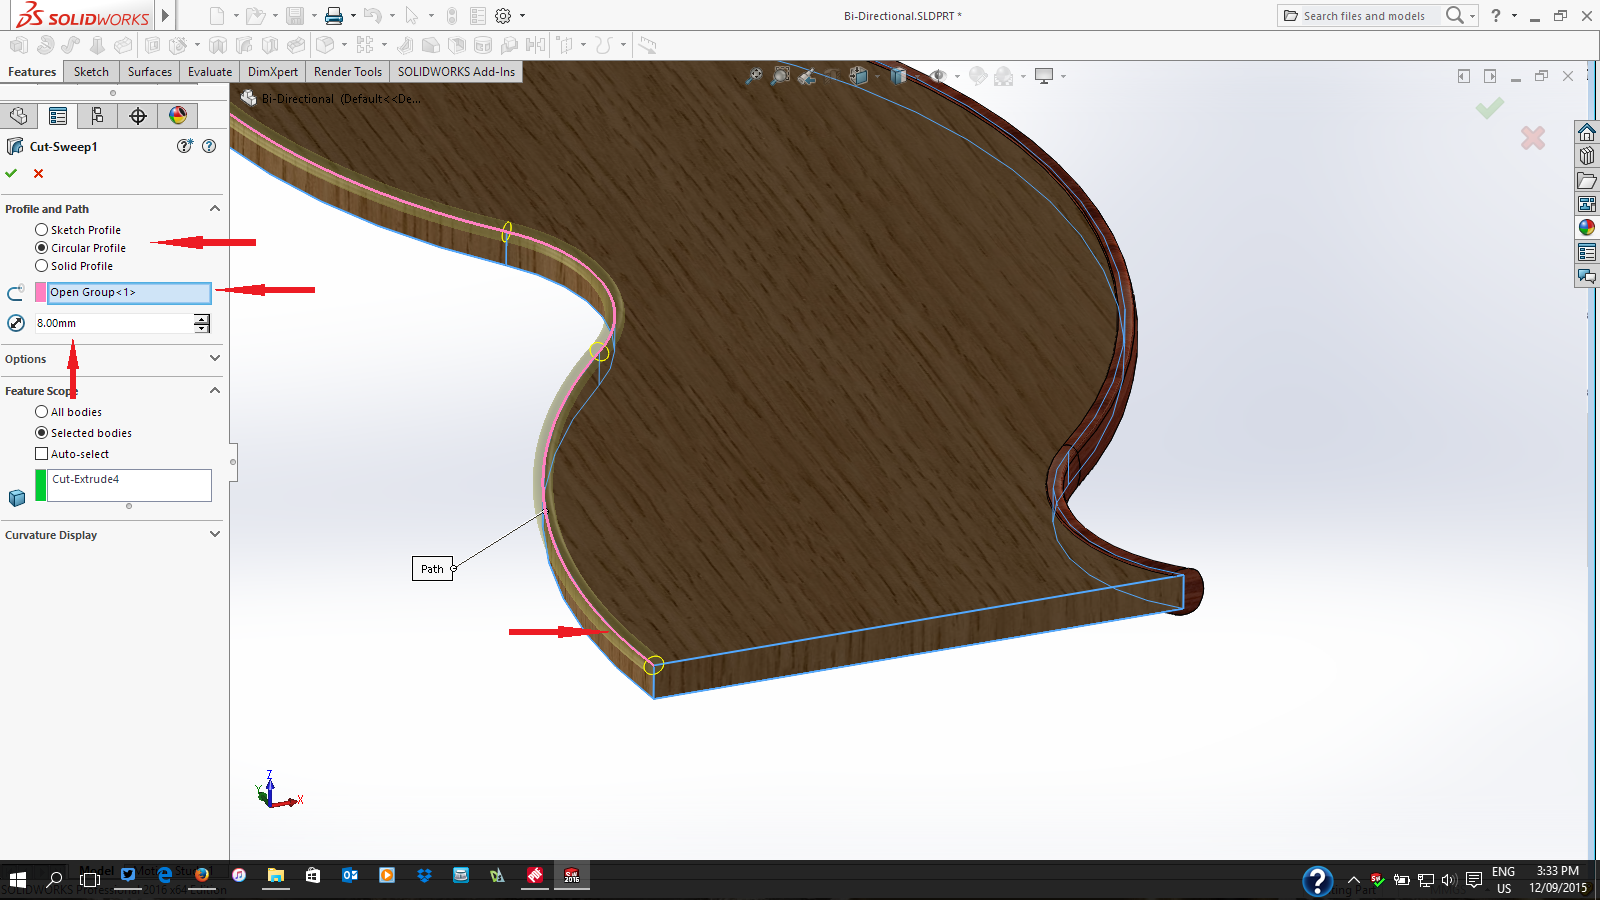 SOLIDWORKS 2016 – A Closer Look #SOLIDWORKS | Michael Lord